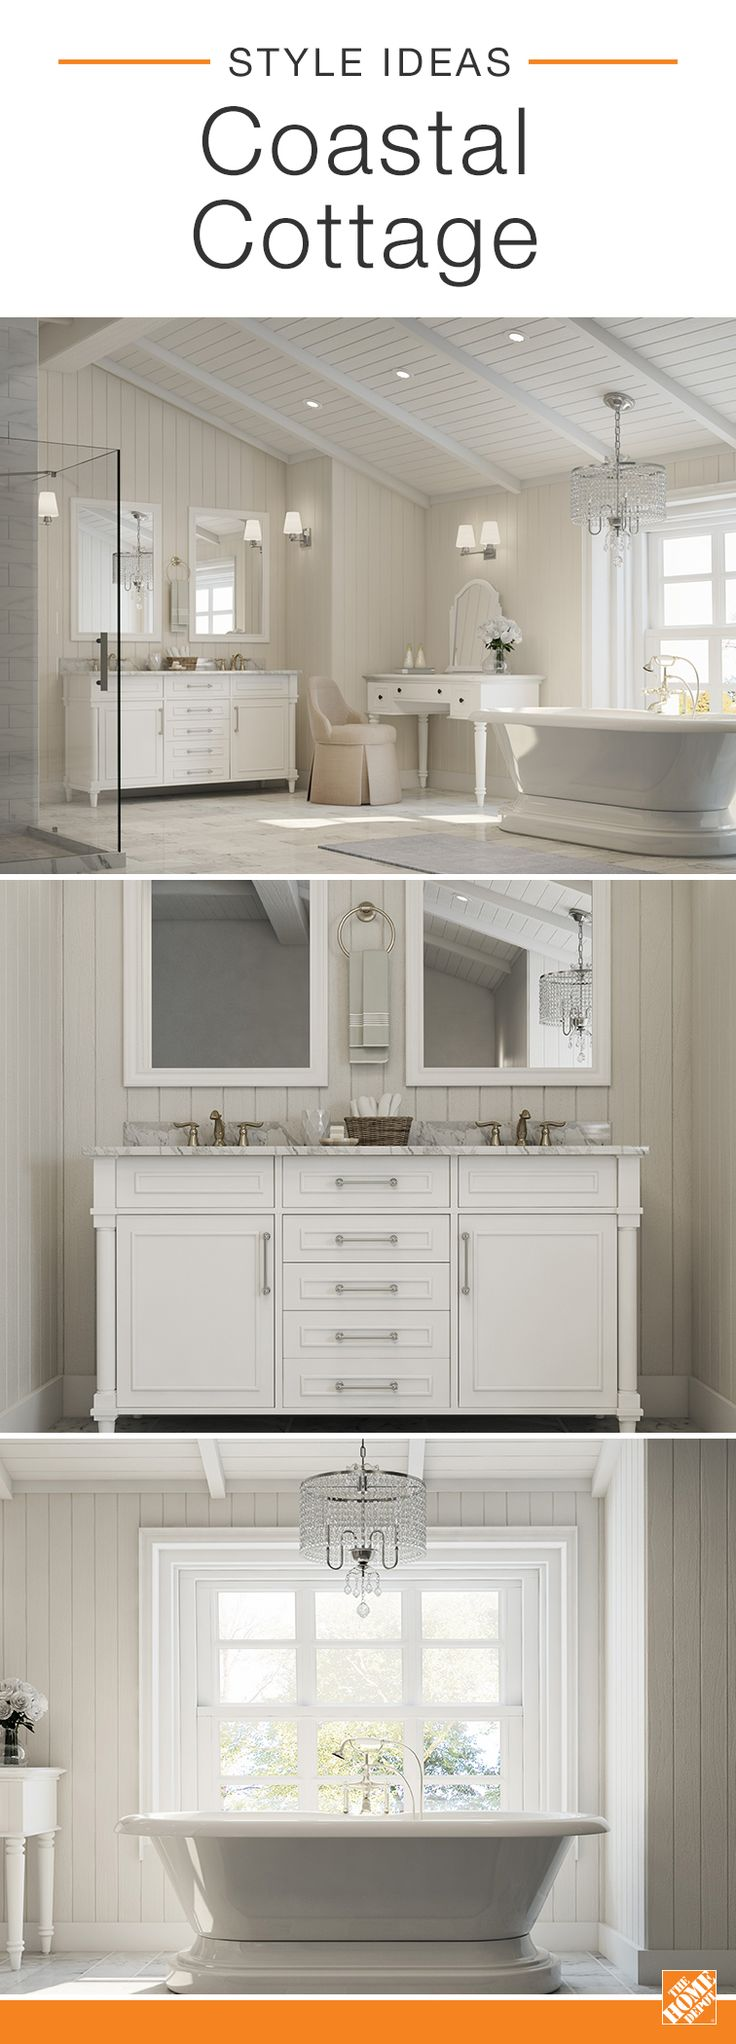 This coastal cottage bath uses a warm white color palette to make the most out of its natural lighting. With a traditional white wood vanity, Ultra Pure White BEHR paint, dreamy freestanding tub and marble tile, the master bath has a sophisticated style that feels light and airy. Click to learn more about this look.